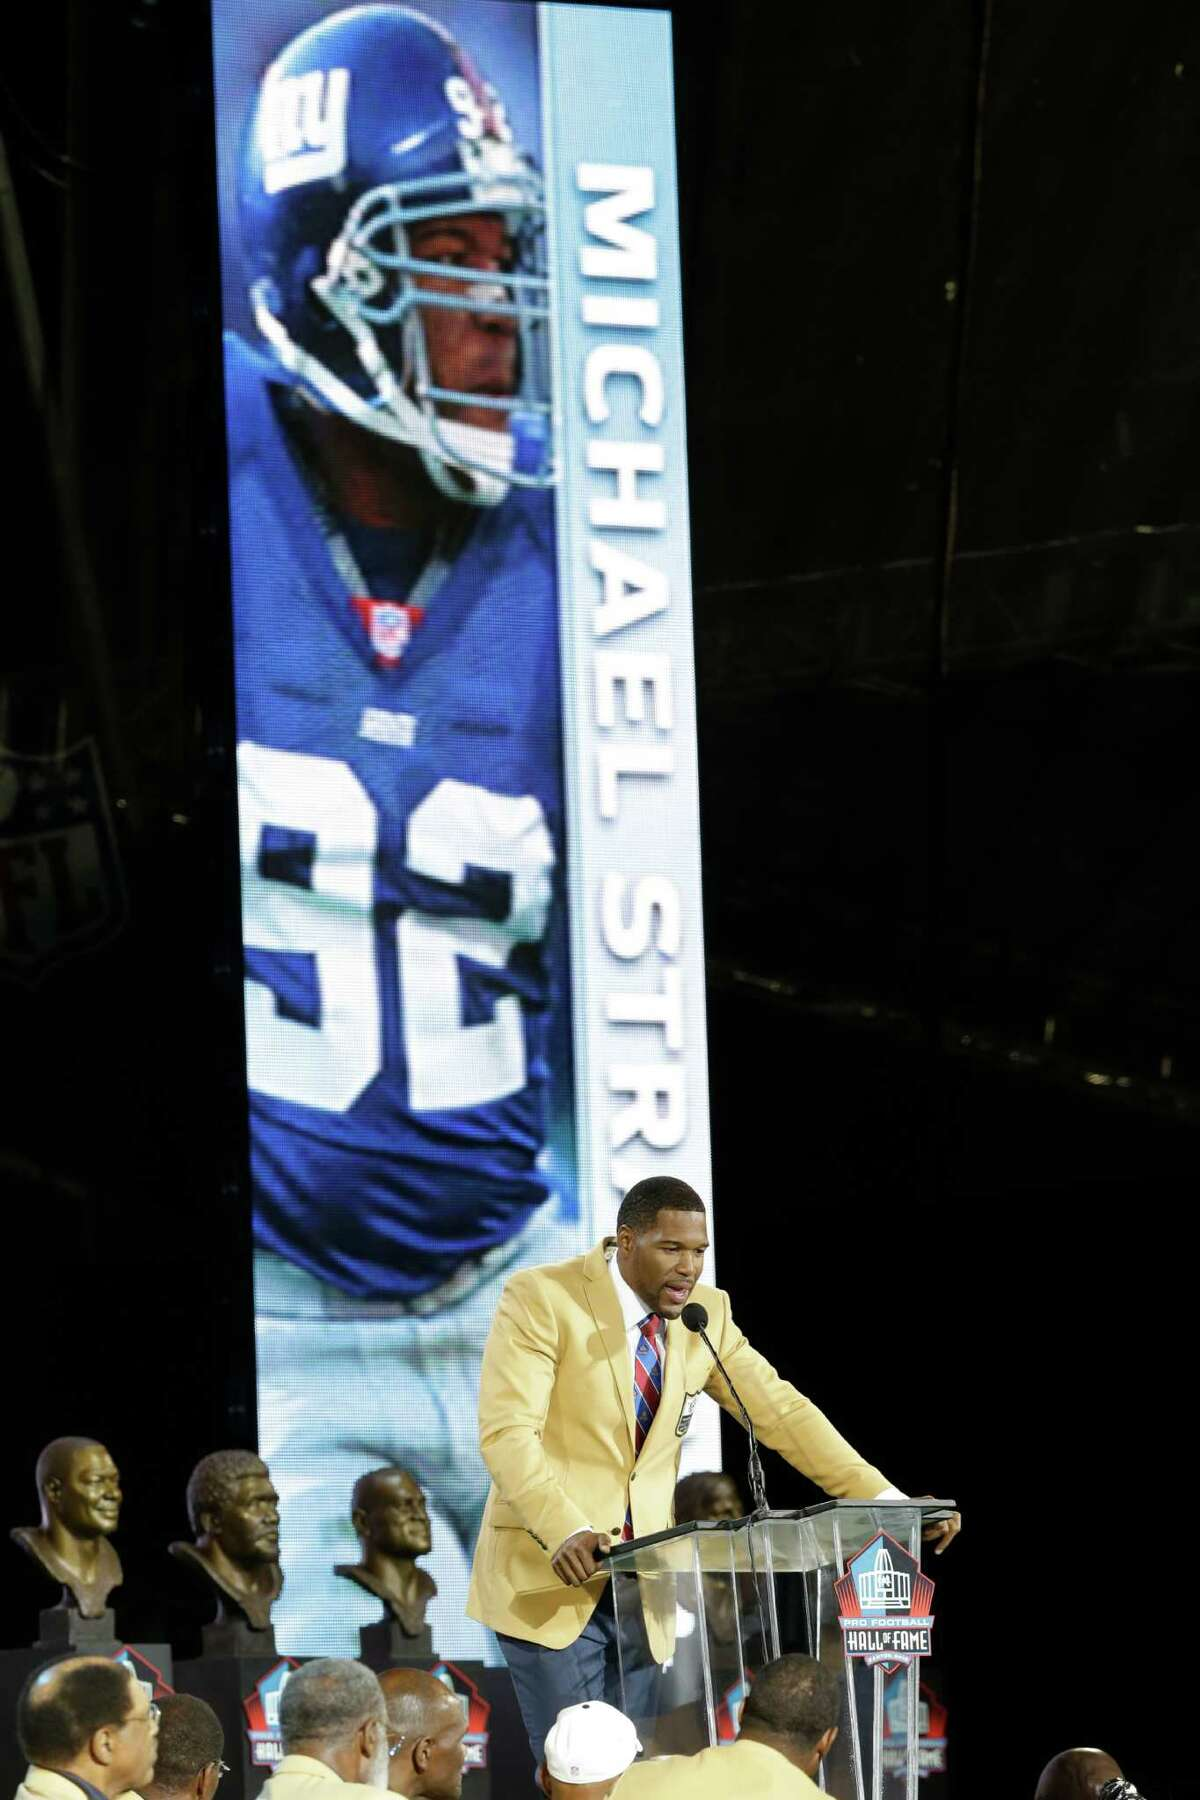 Hall of Fame inductee Michael Strahan speaks during the Pro Football Hall of Fame enshrinement ceremony at the Pro Football Hall of Fame on Saturday, Aug. 2, 2014, in Canton, Ohio. (AP Photo/Tony Dejak) ORG XMIT: OHTD128